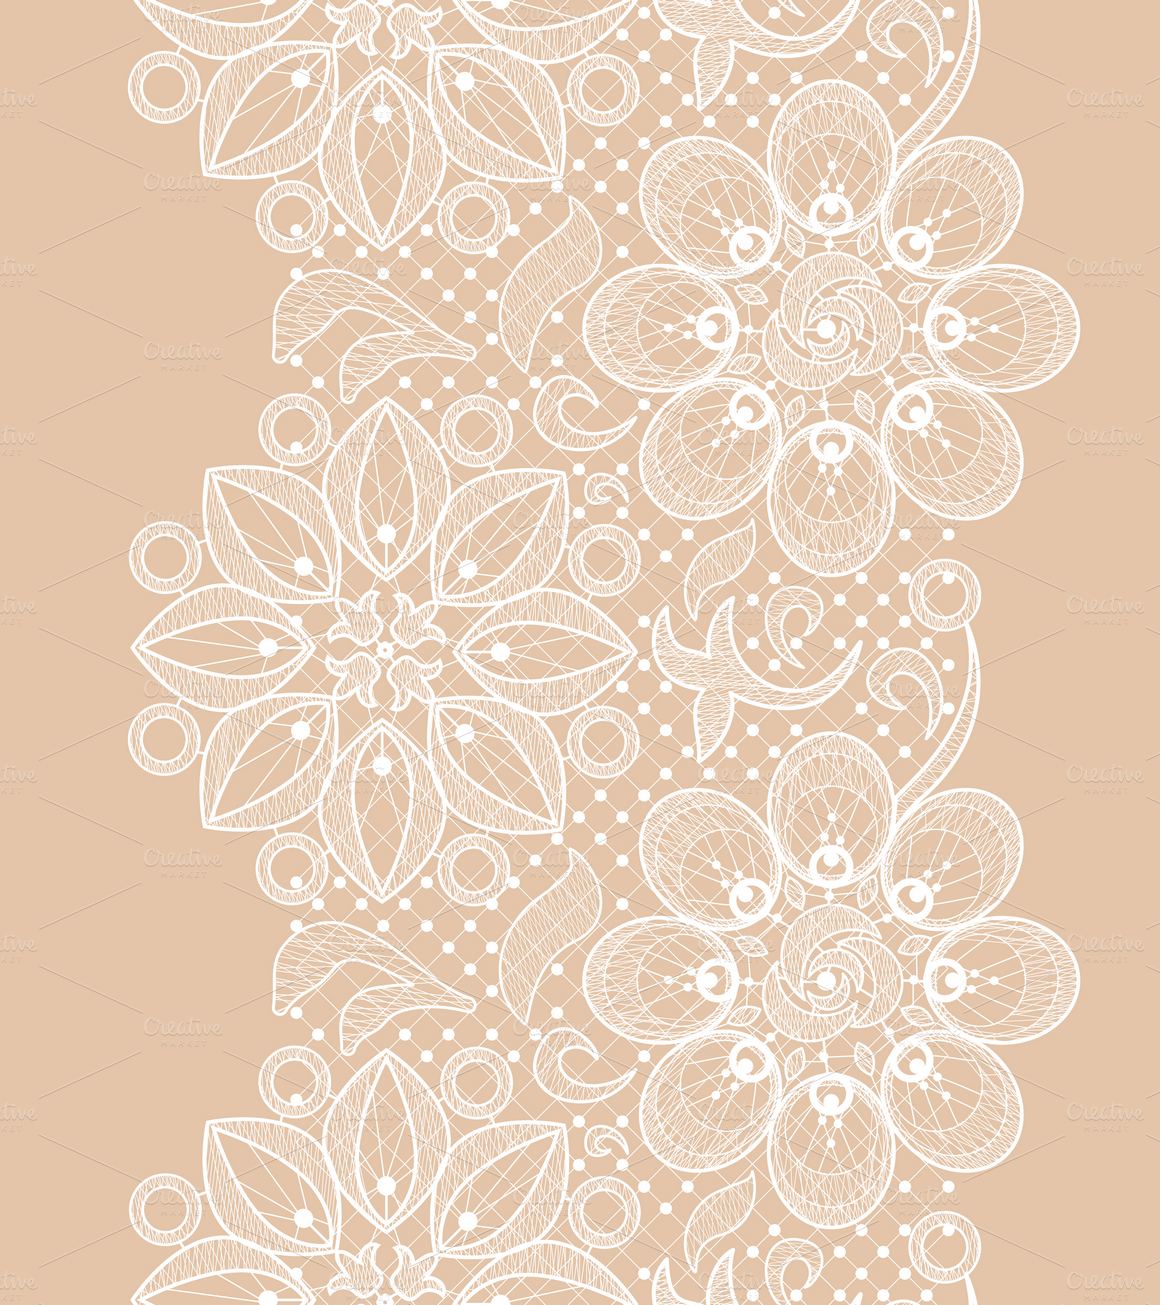 Seamless Lace Texture Designs